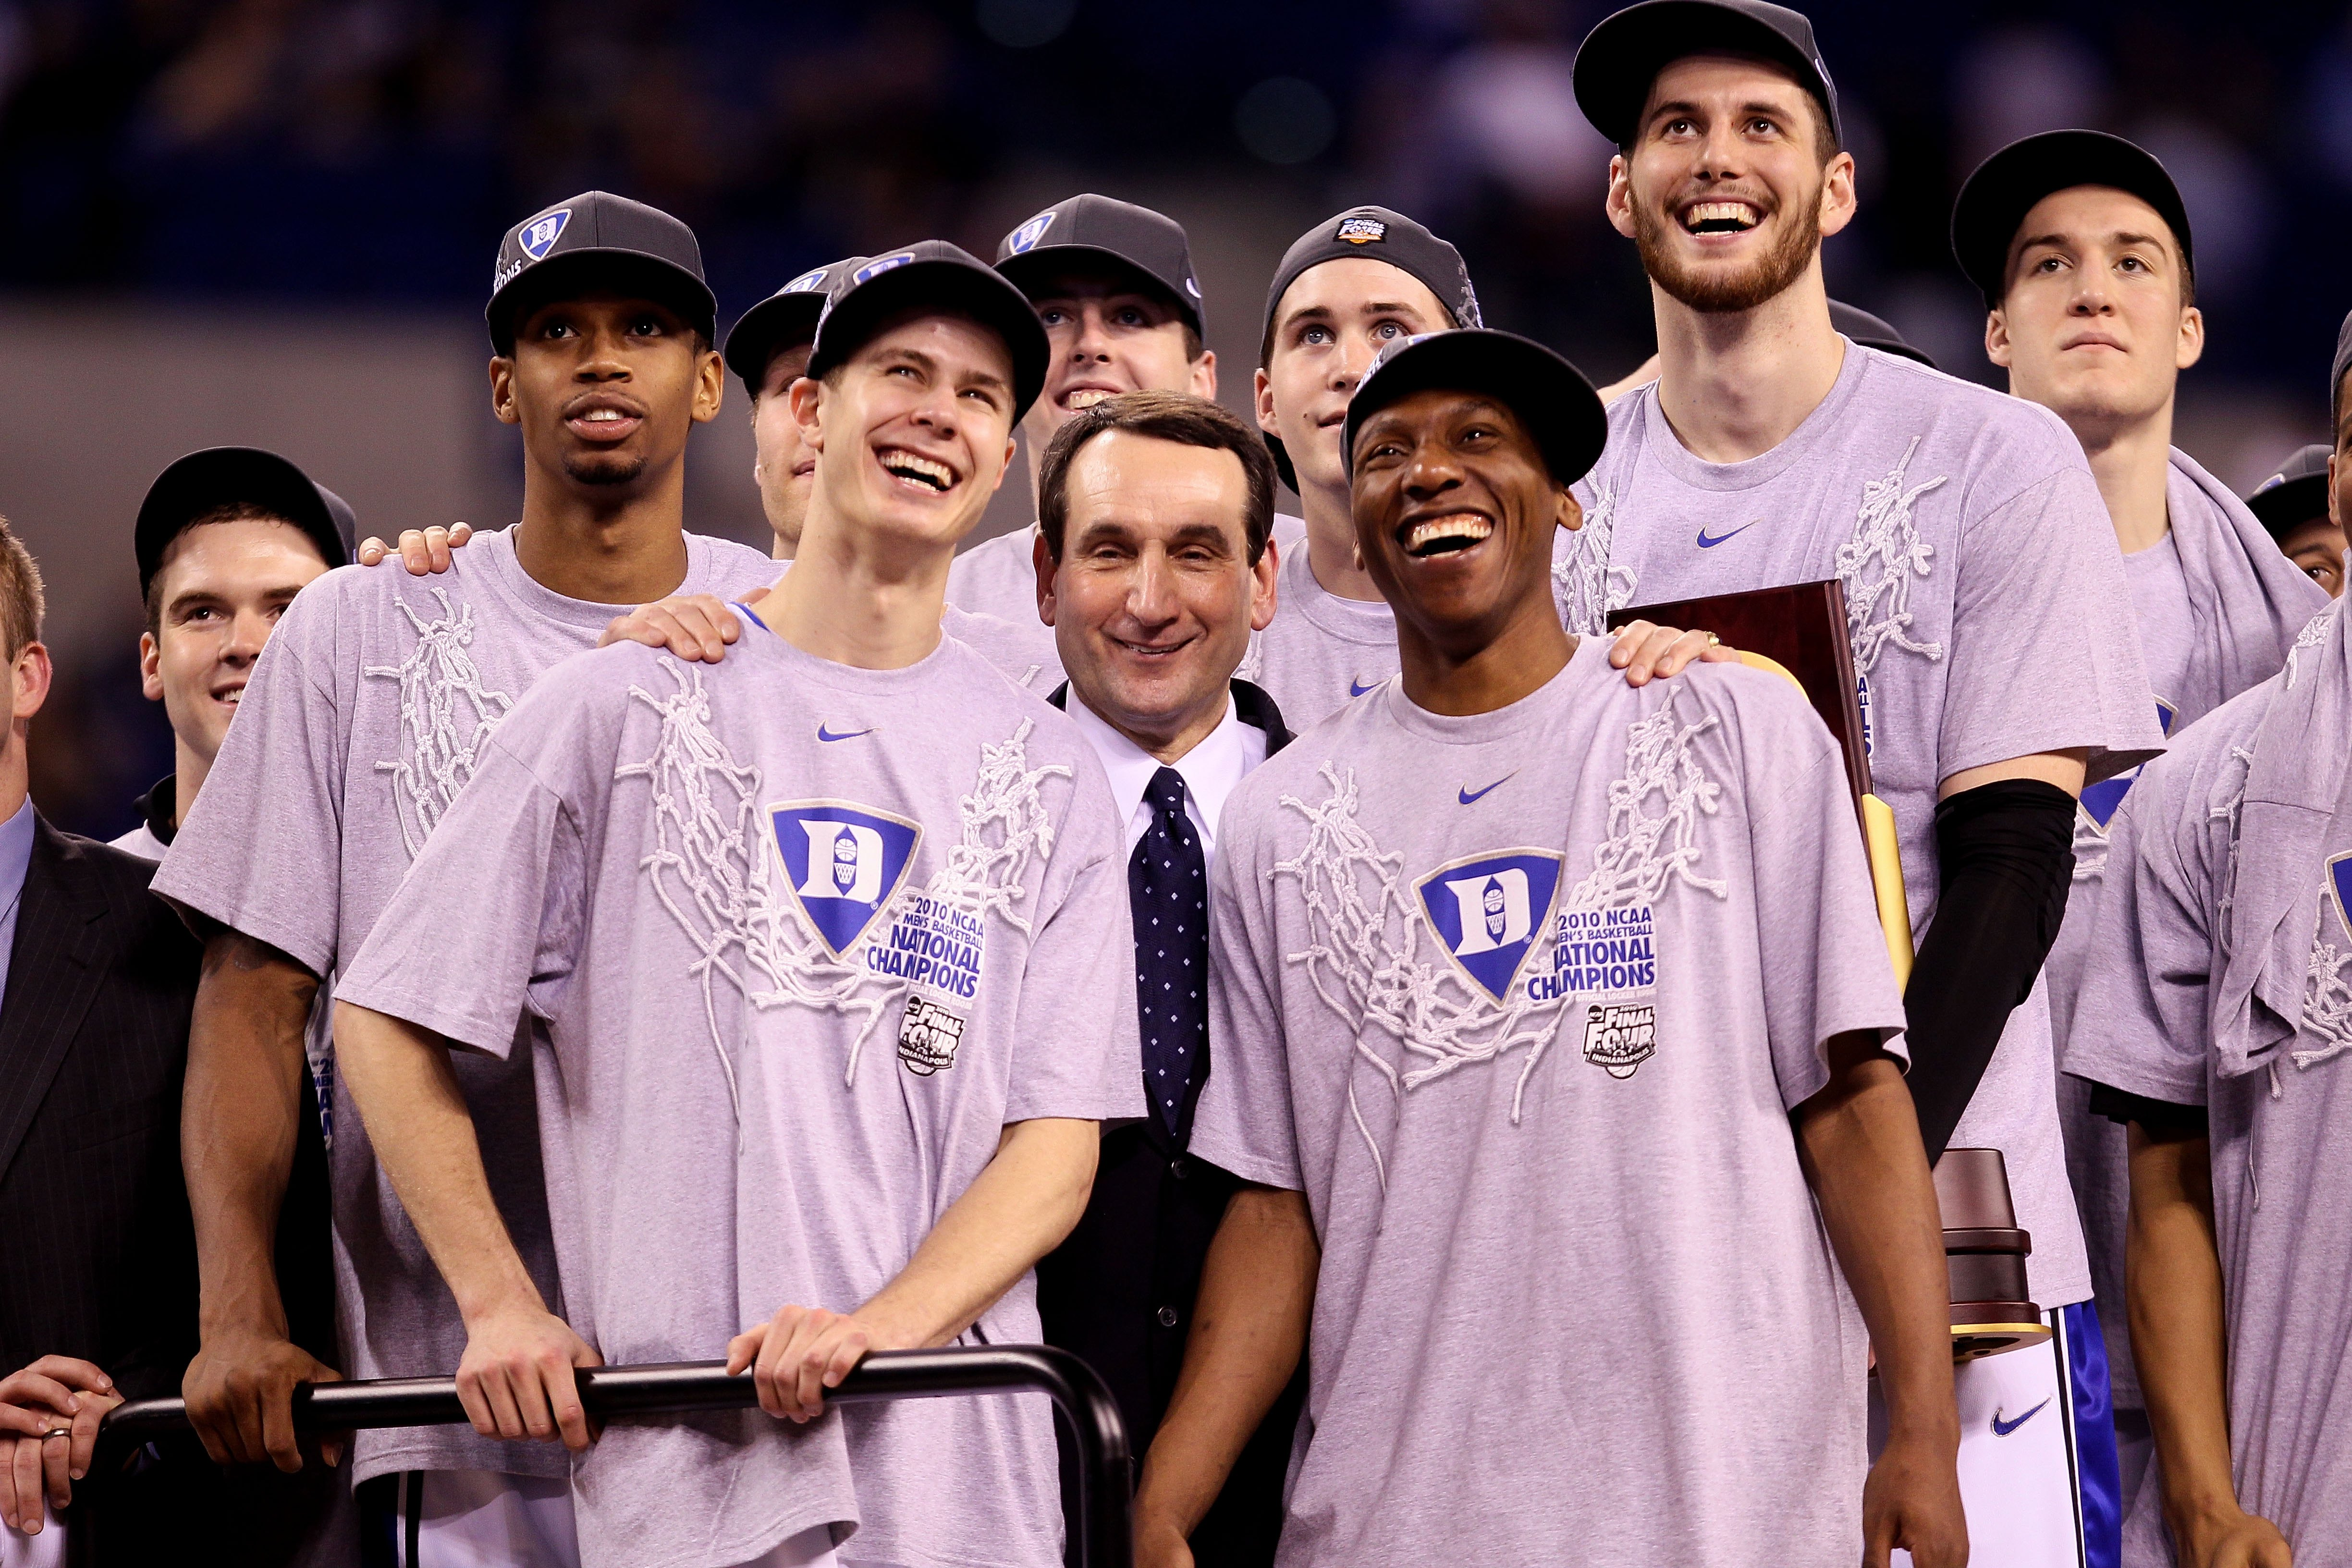 INDIANAPOLIS - APRIL 05:  (L-R) Lance Thomas #42 Jon Scheyer #30, head coach Mike Krzyzewski, Nolan Smith #2 and Brian Zoubek #55 of the Duke Blue Devils watch CBS 's presentation of 'One Shining Moment' as they celebrate after they won 61-59 against the